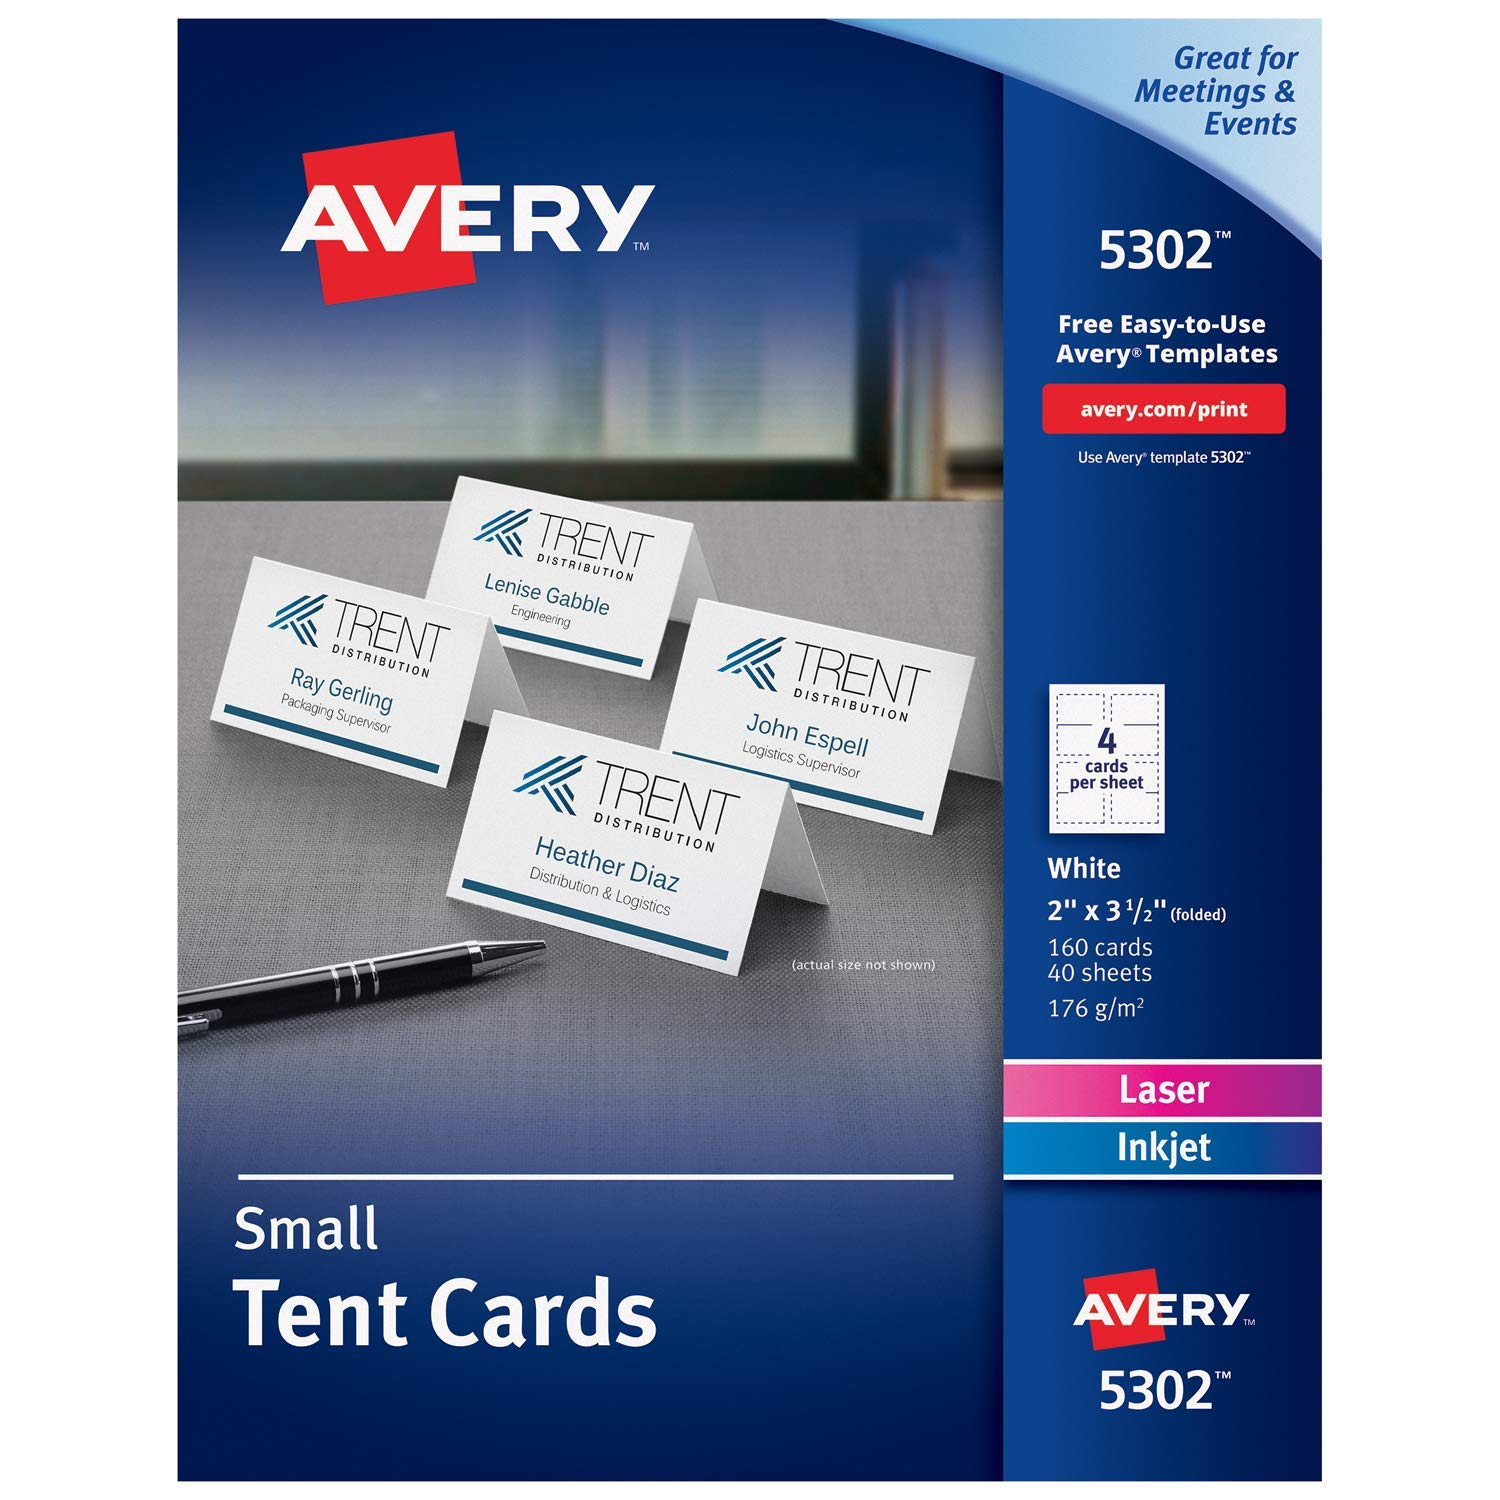 Avery Card Template